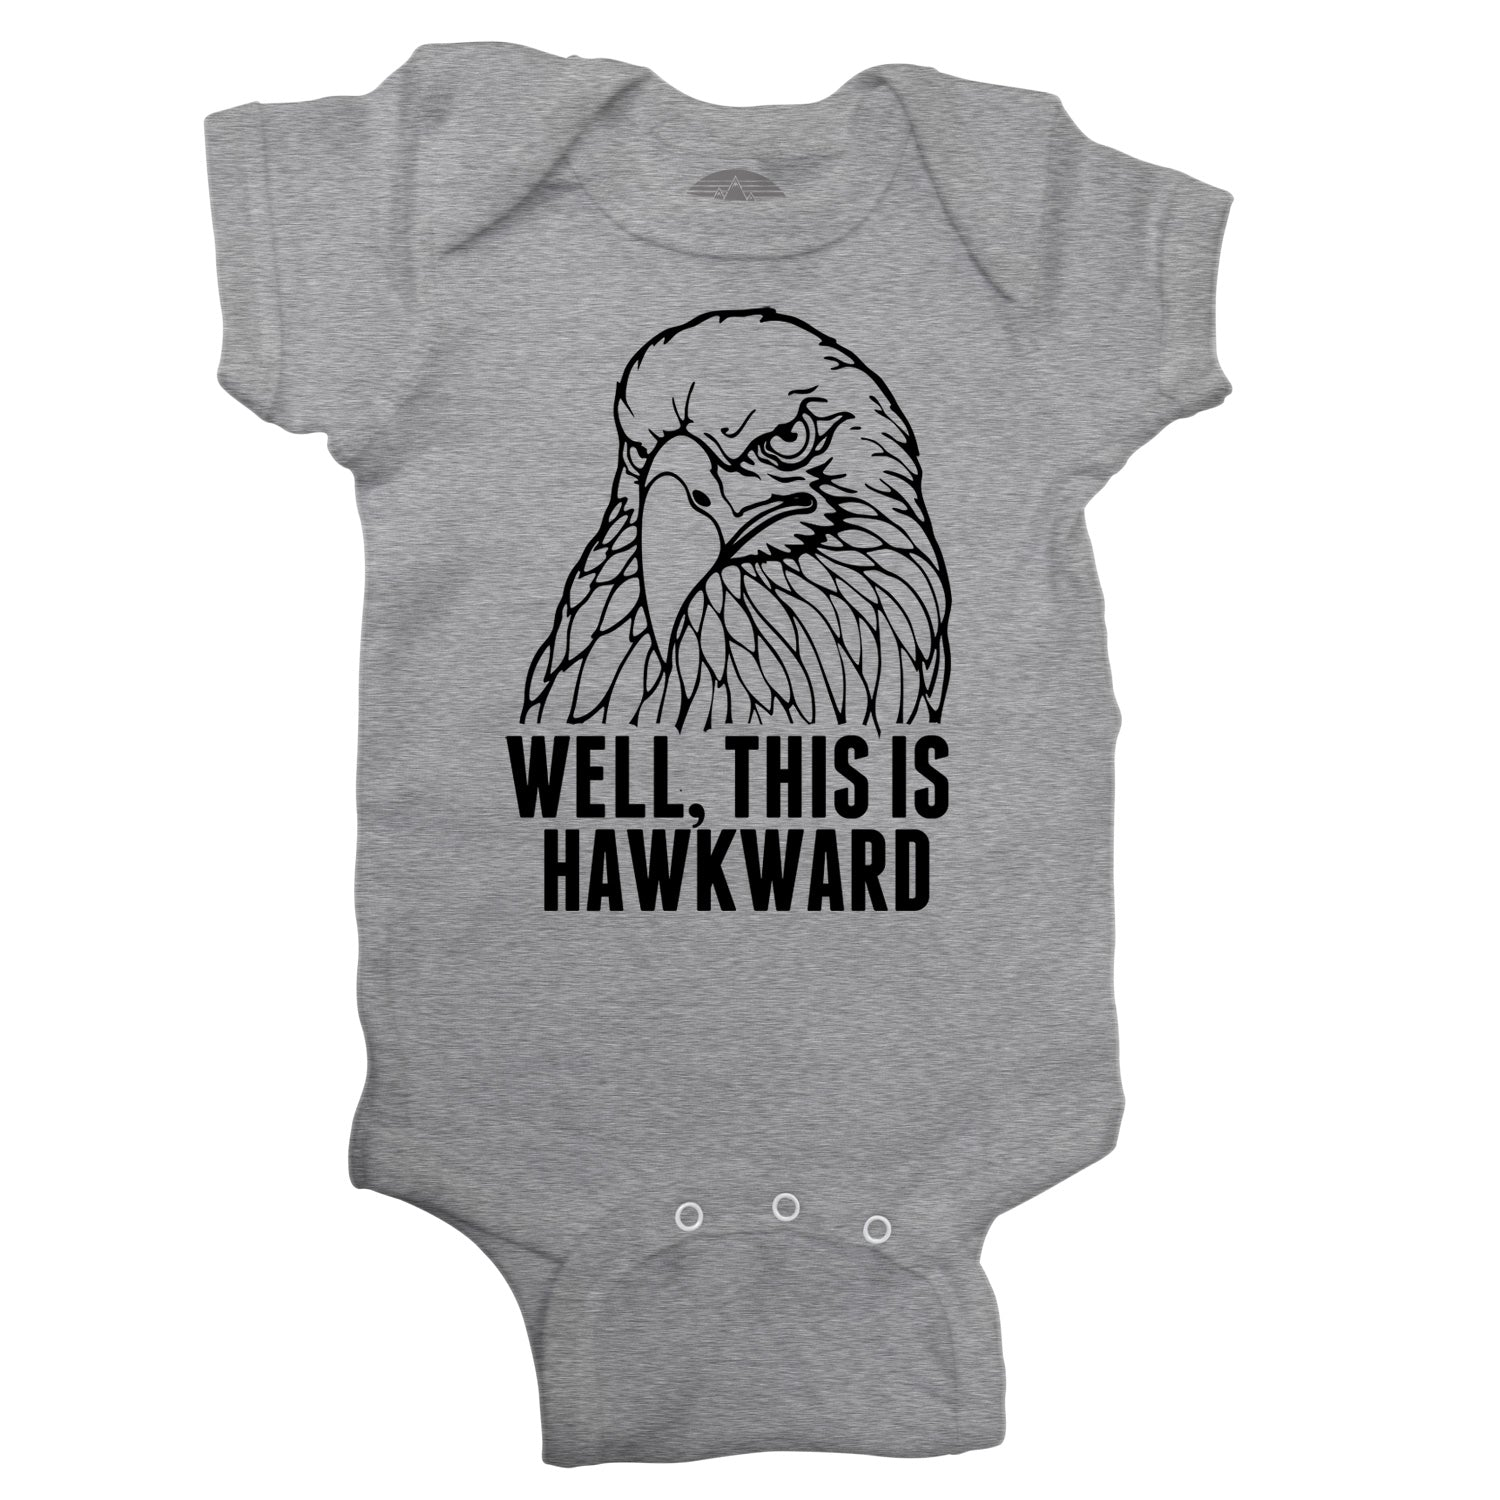 Well This is Hawkward Infant Bodysuit - Unisex Fit